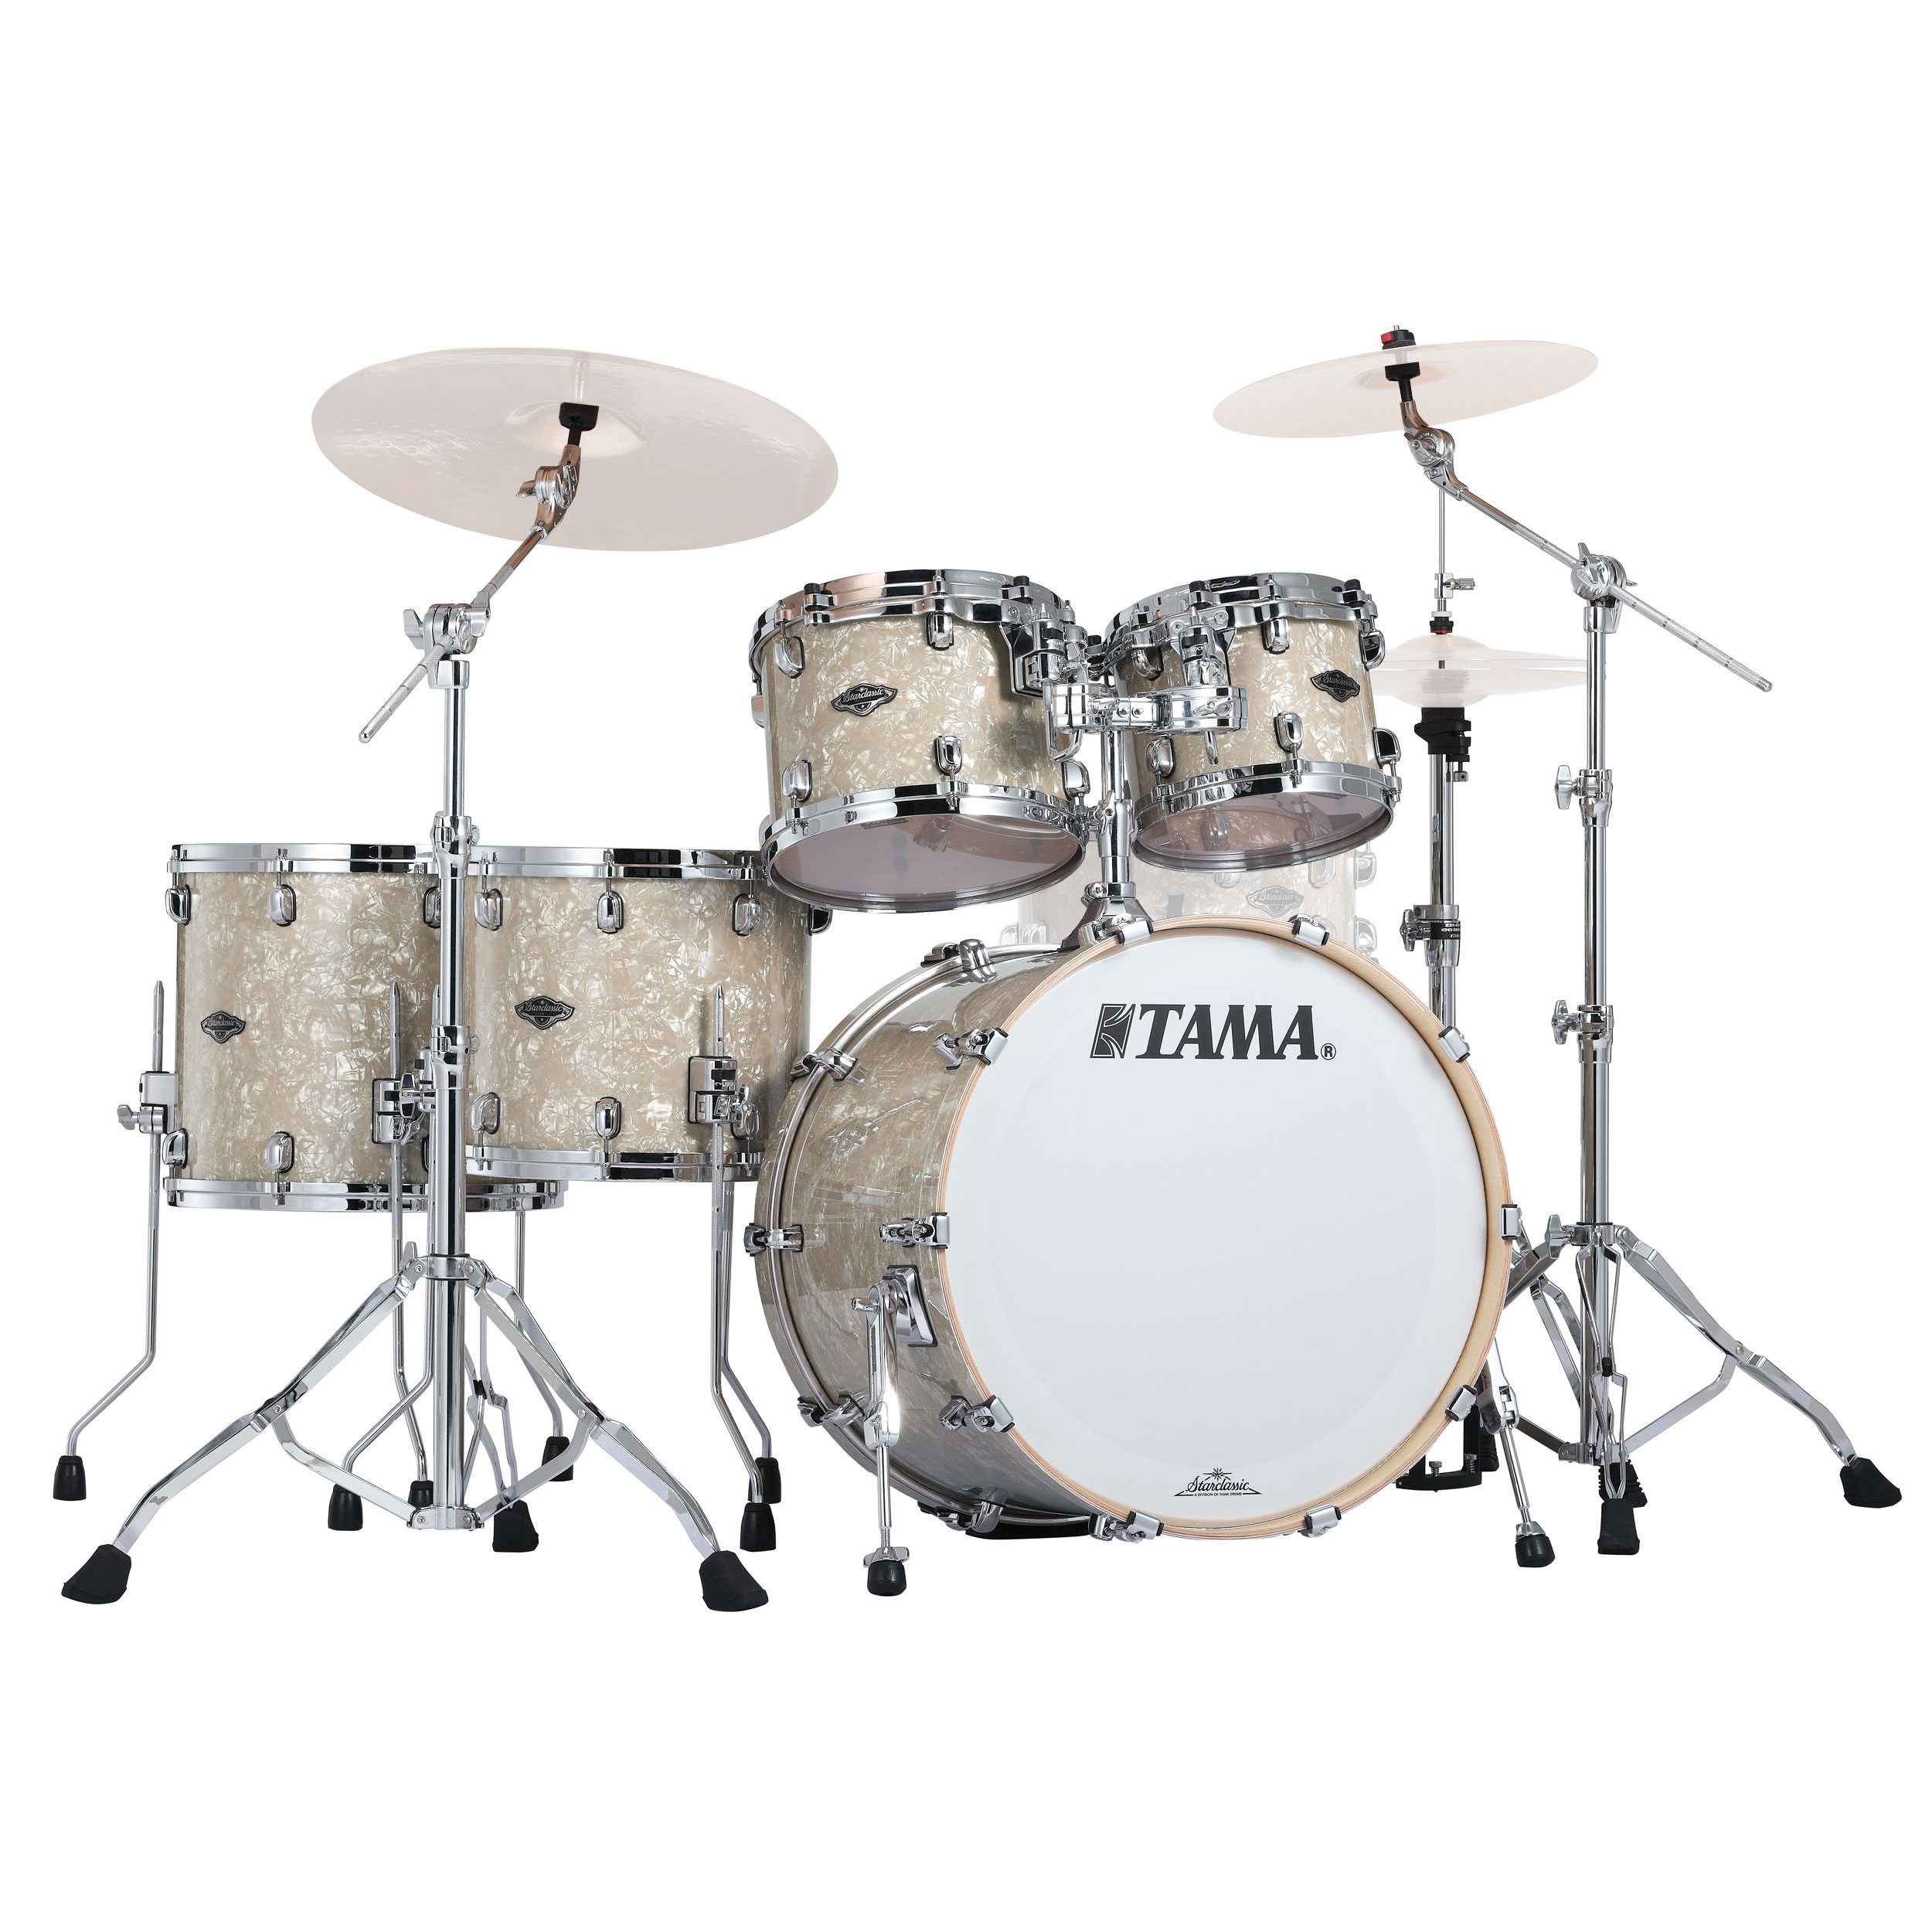 "Tama Starclassic Performer B/B 5-Piece Drum Set Shell Pack (22"" Bass, 10/12/14/16"" Toms) in Wrap Finish"